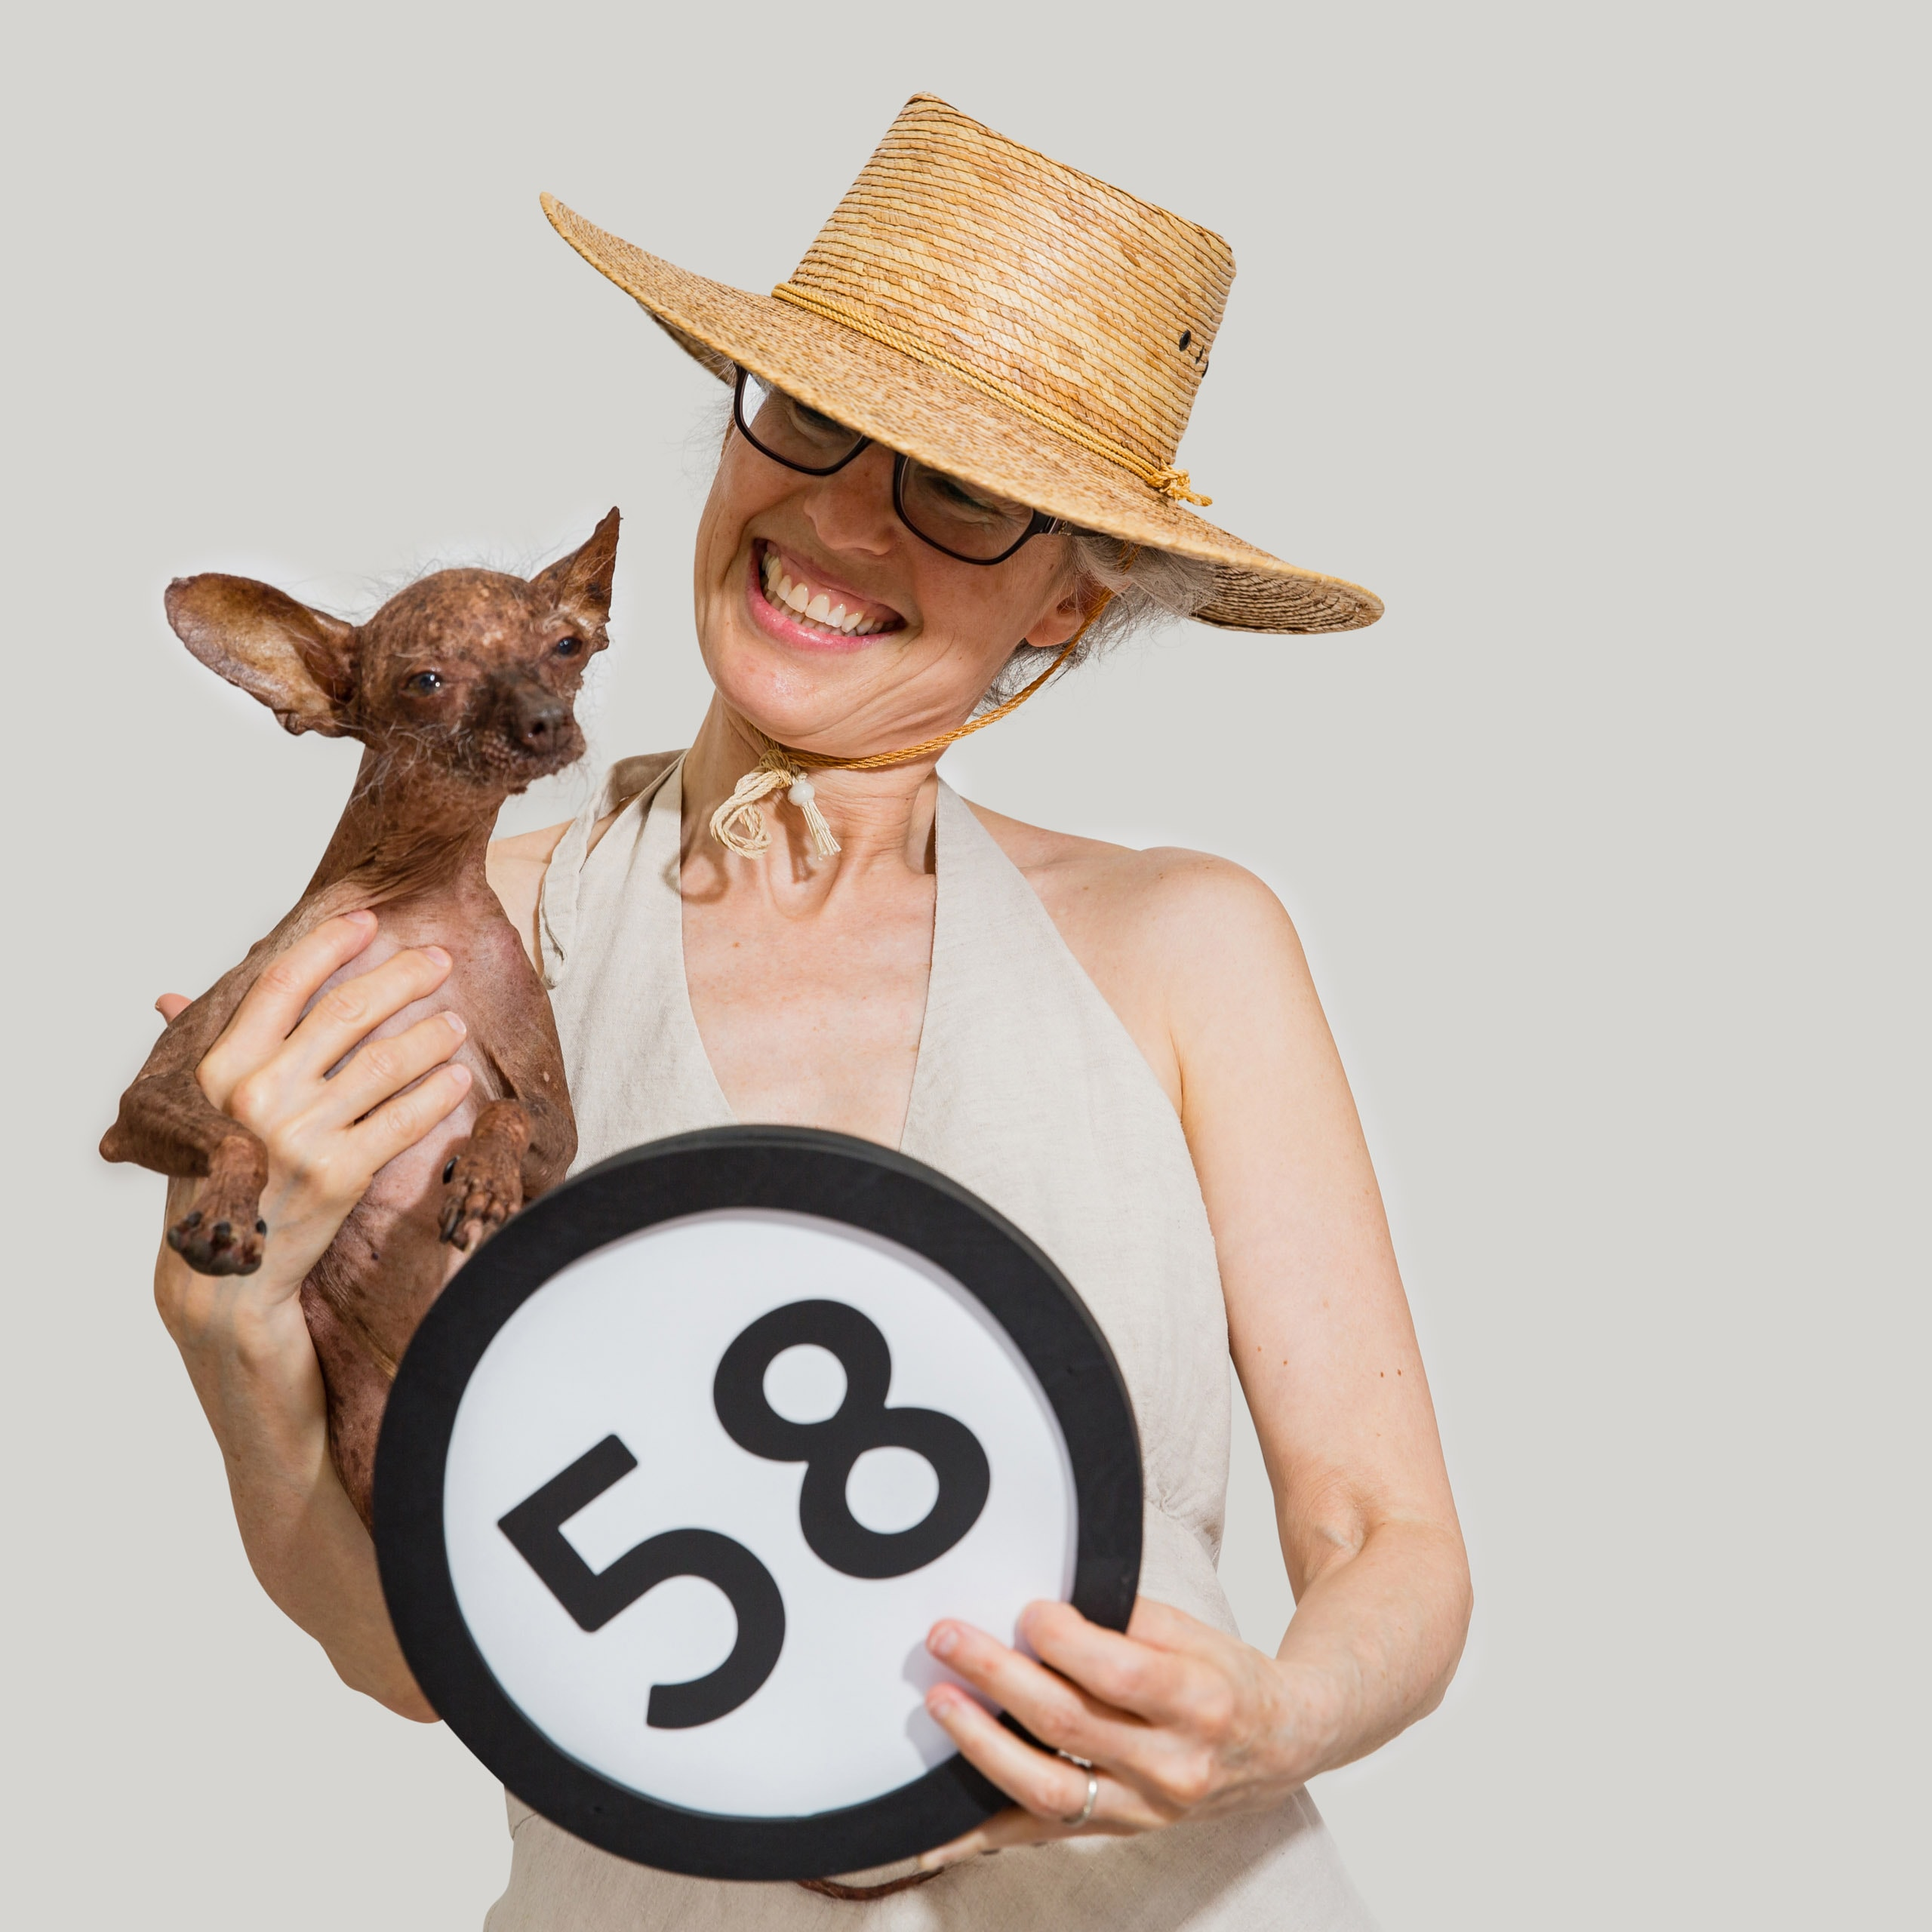 58 years old woman in a big straw sun hat smiles at her hairless alien dog that she holds in her right arm. The alien dog is looking into the lens. The woman also holds a token with the number 58 on it. This digital image is part of the 1 to Infinity portrait photography series by Danny Goldfield